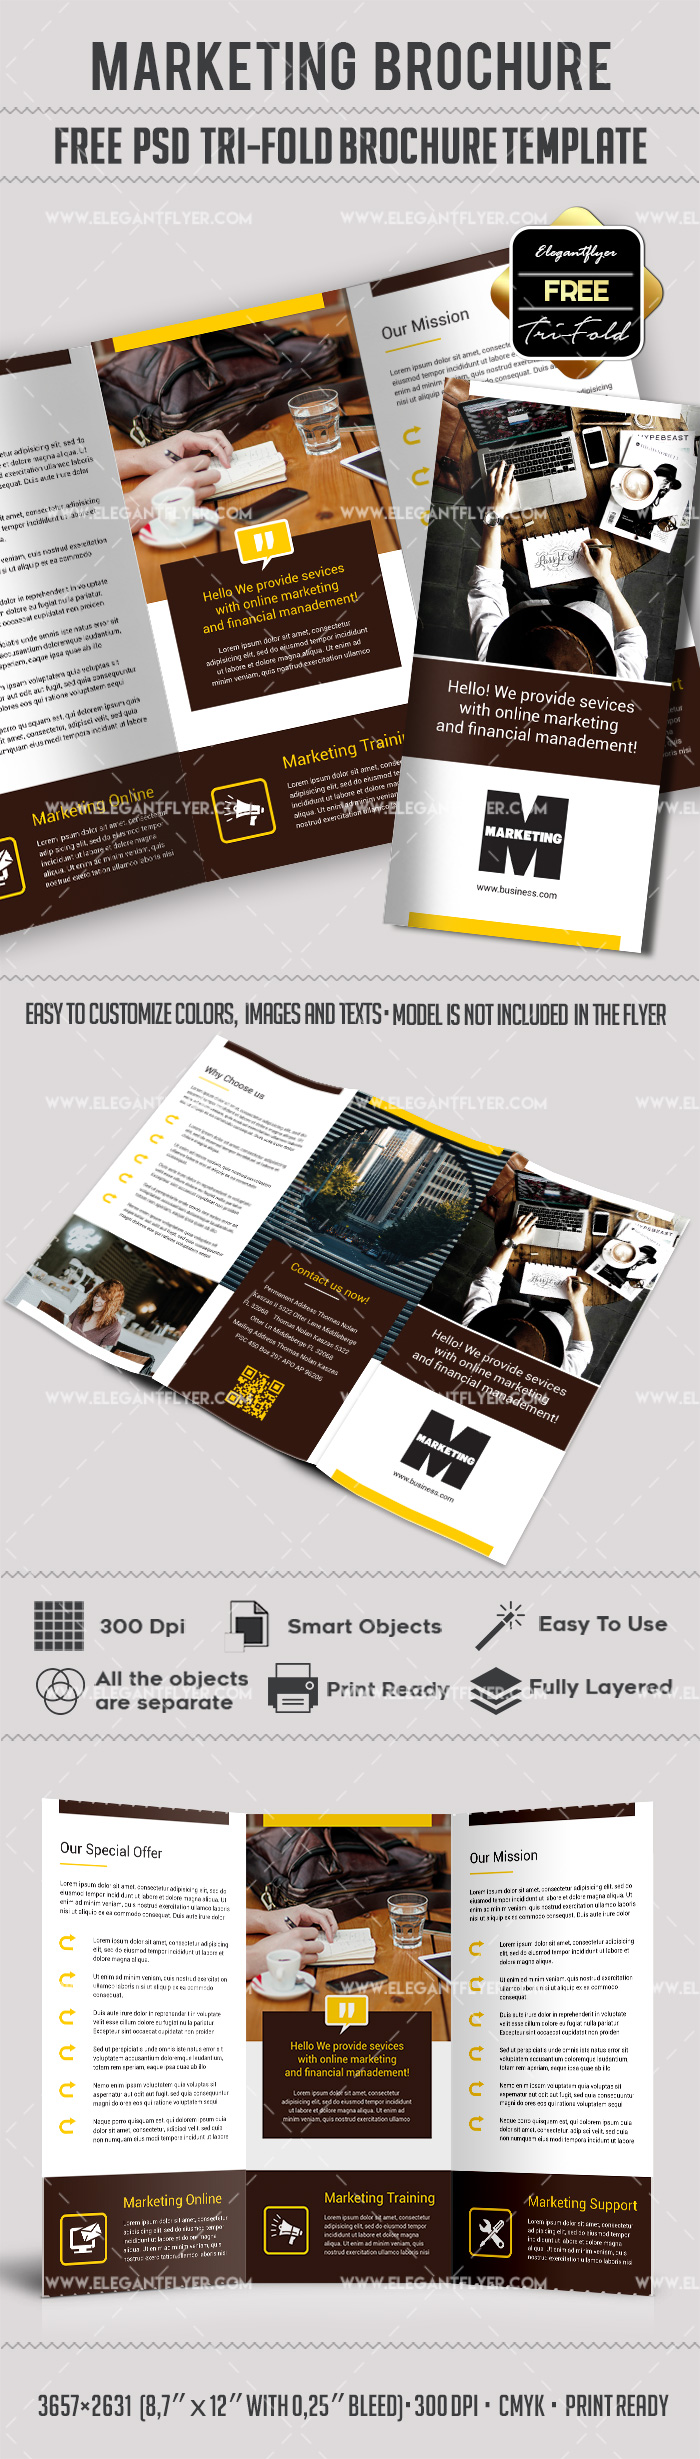 Marketing free tri fold psd brochure template by for Tri fold brochure psd template